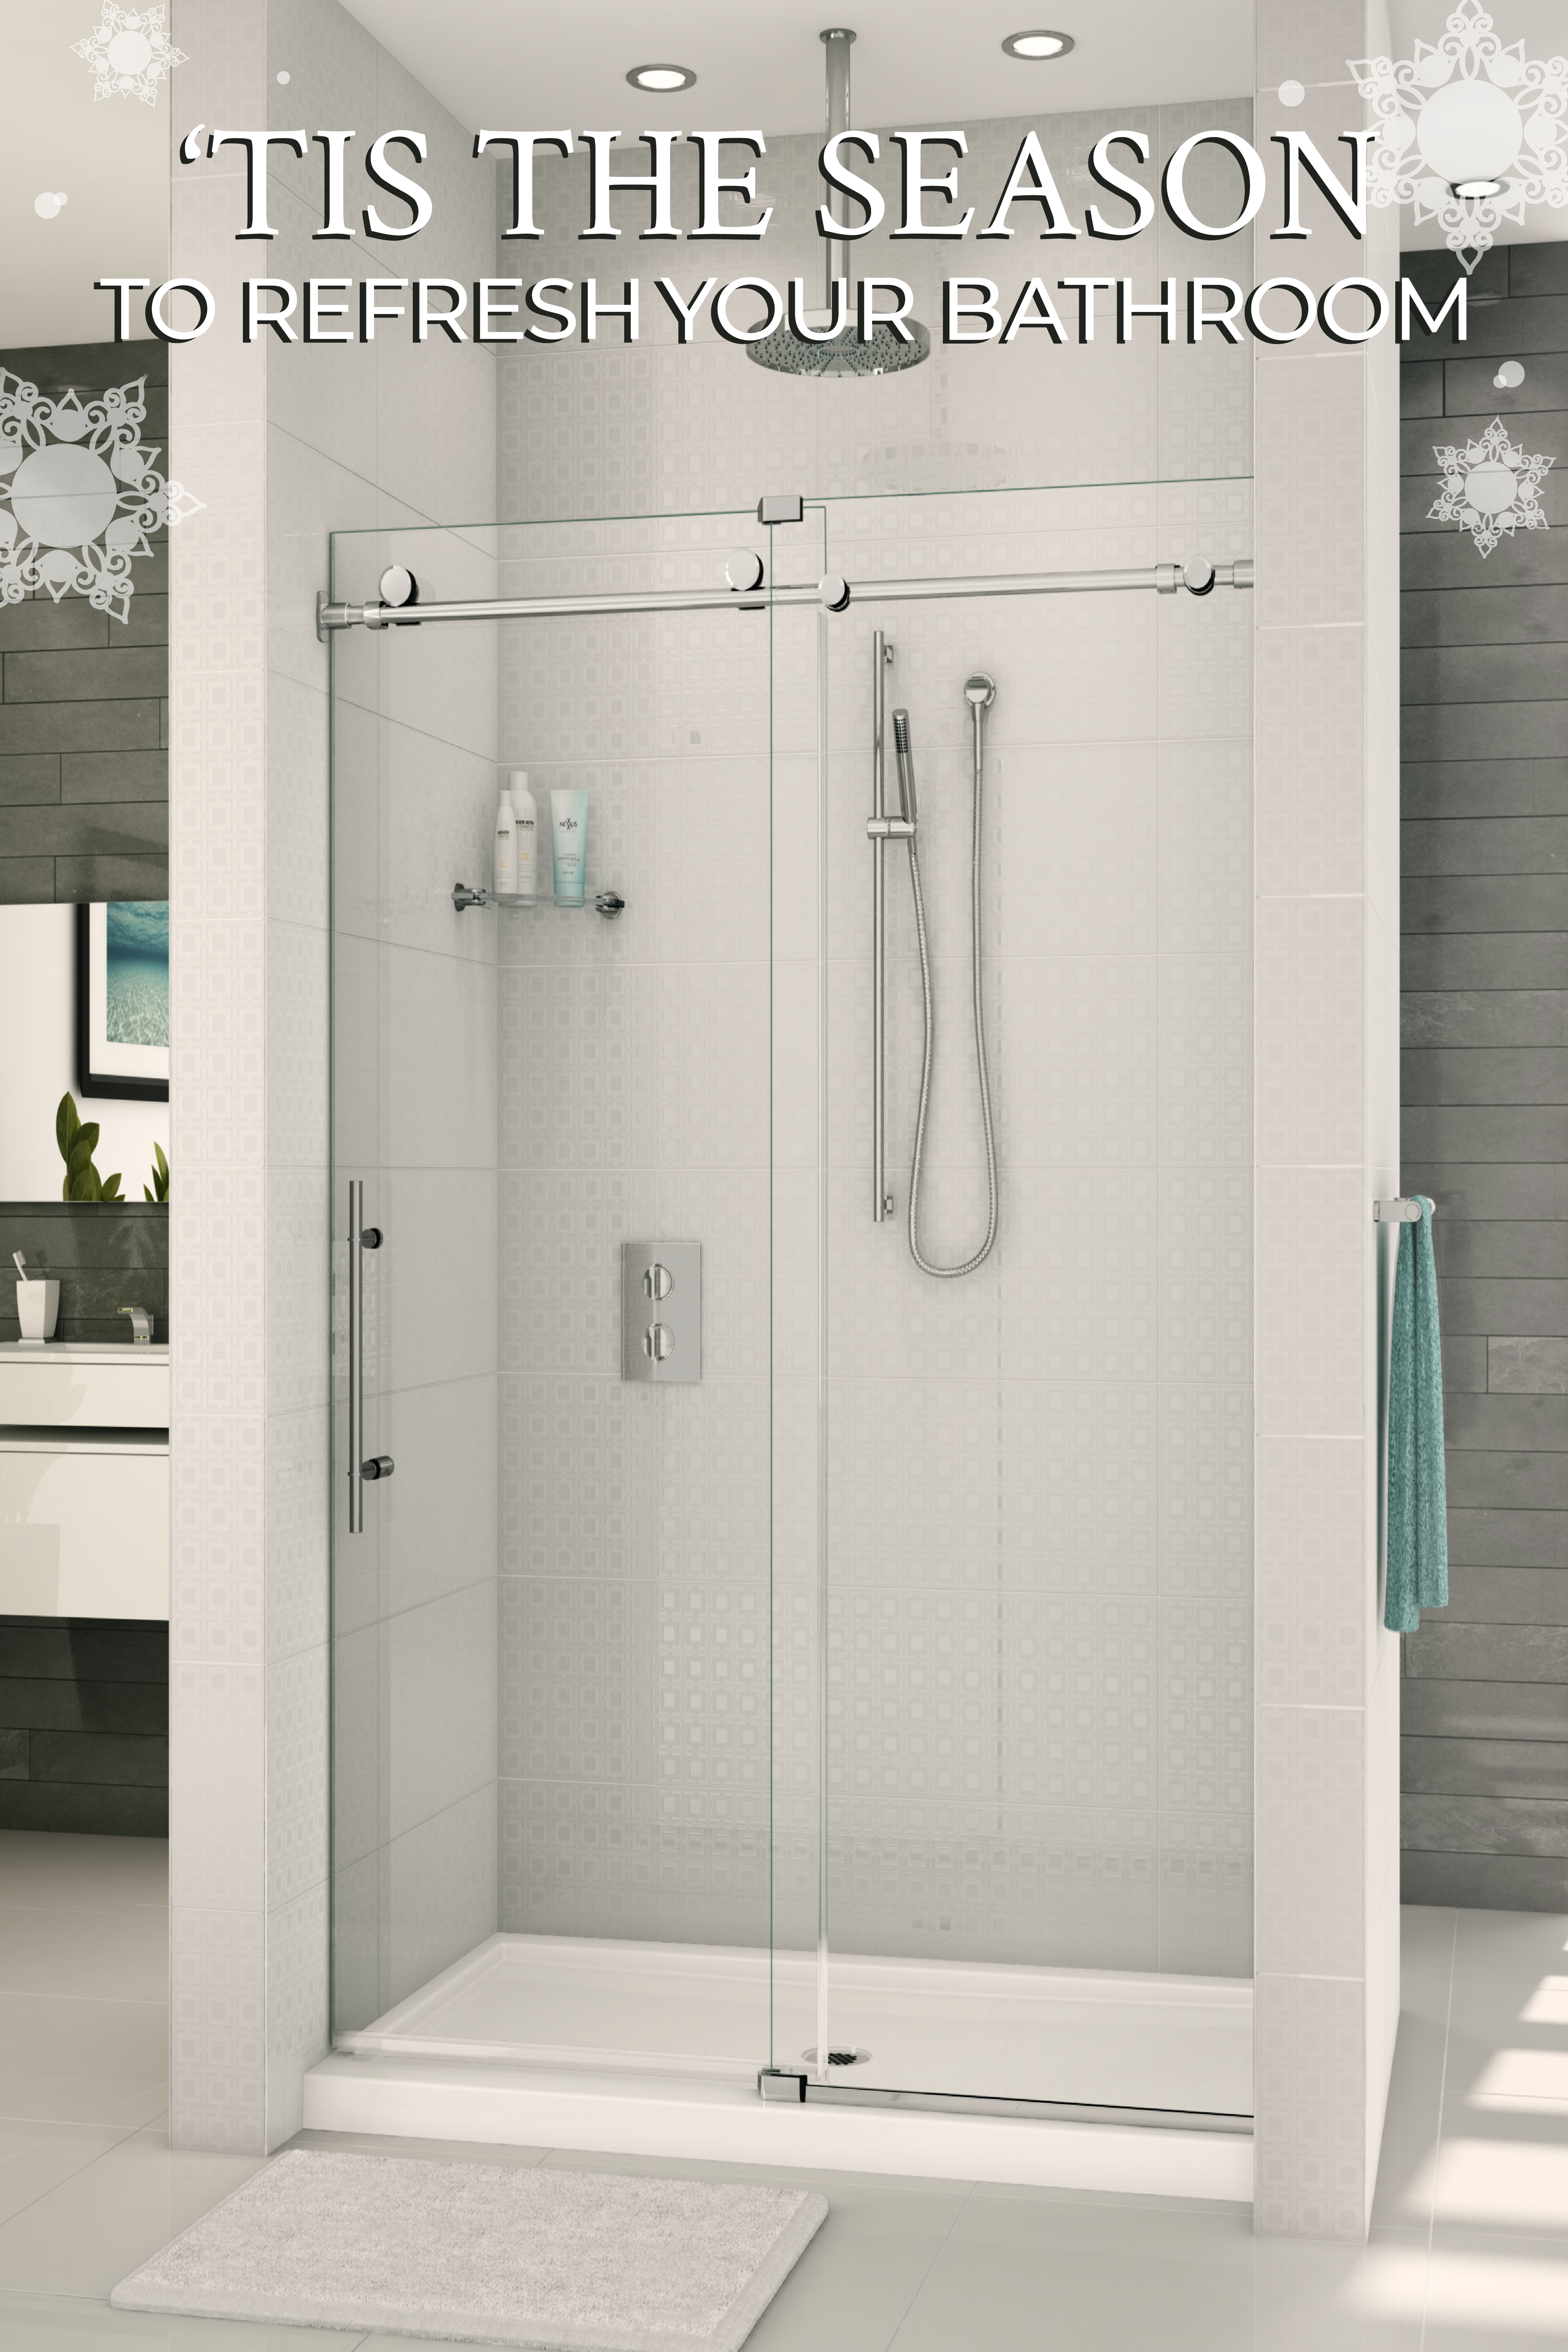 Tis The Season To Refresh Your Bathroom Call 1 800 Showers To Set